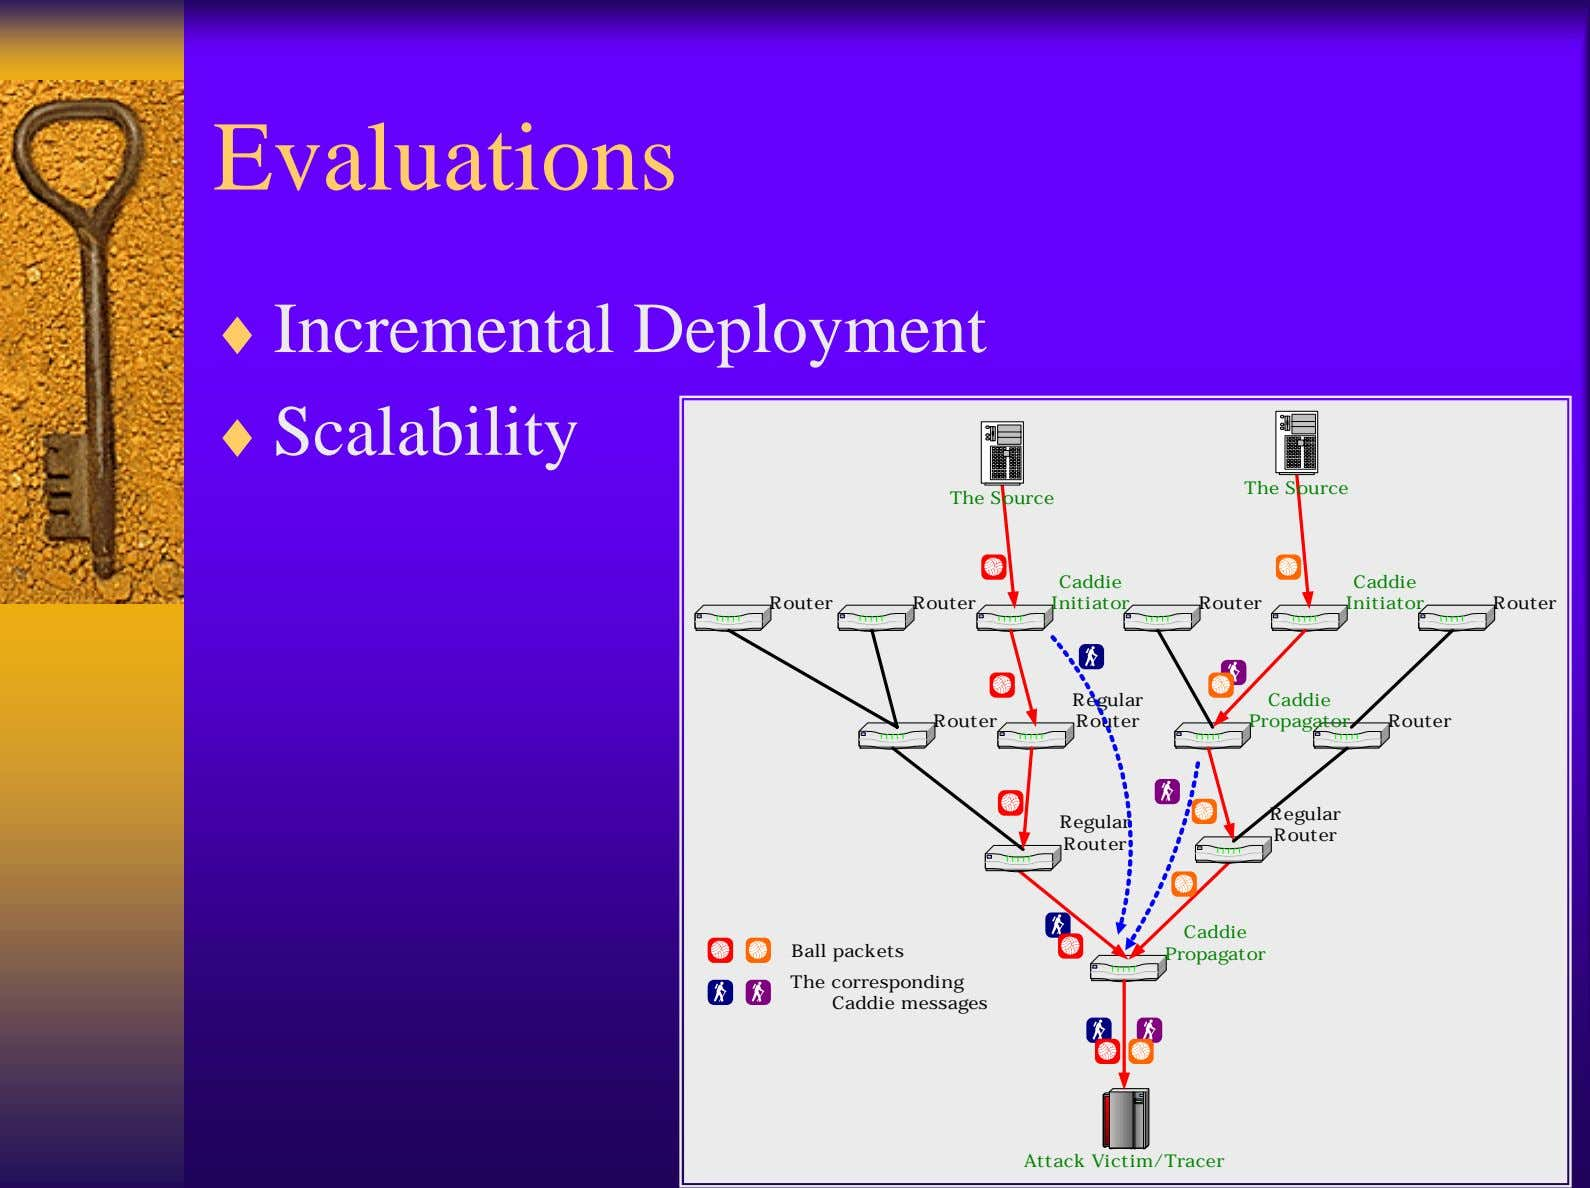 Evaluations ♦ Incremental Deployment ♦ Scalability The Source The Source Caddie Caddie Router Router